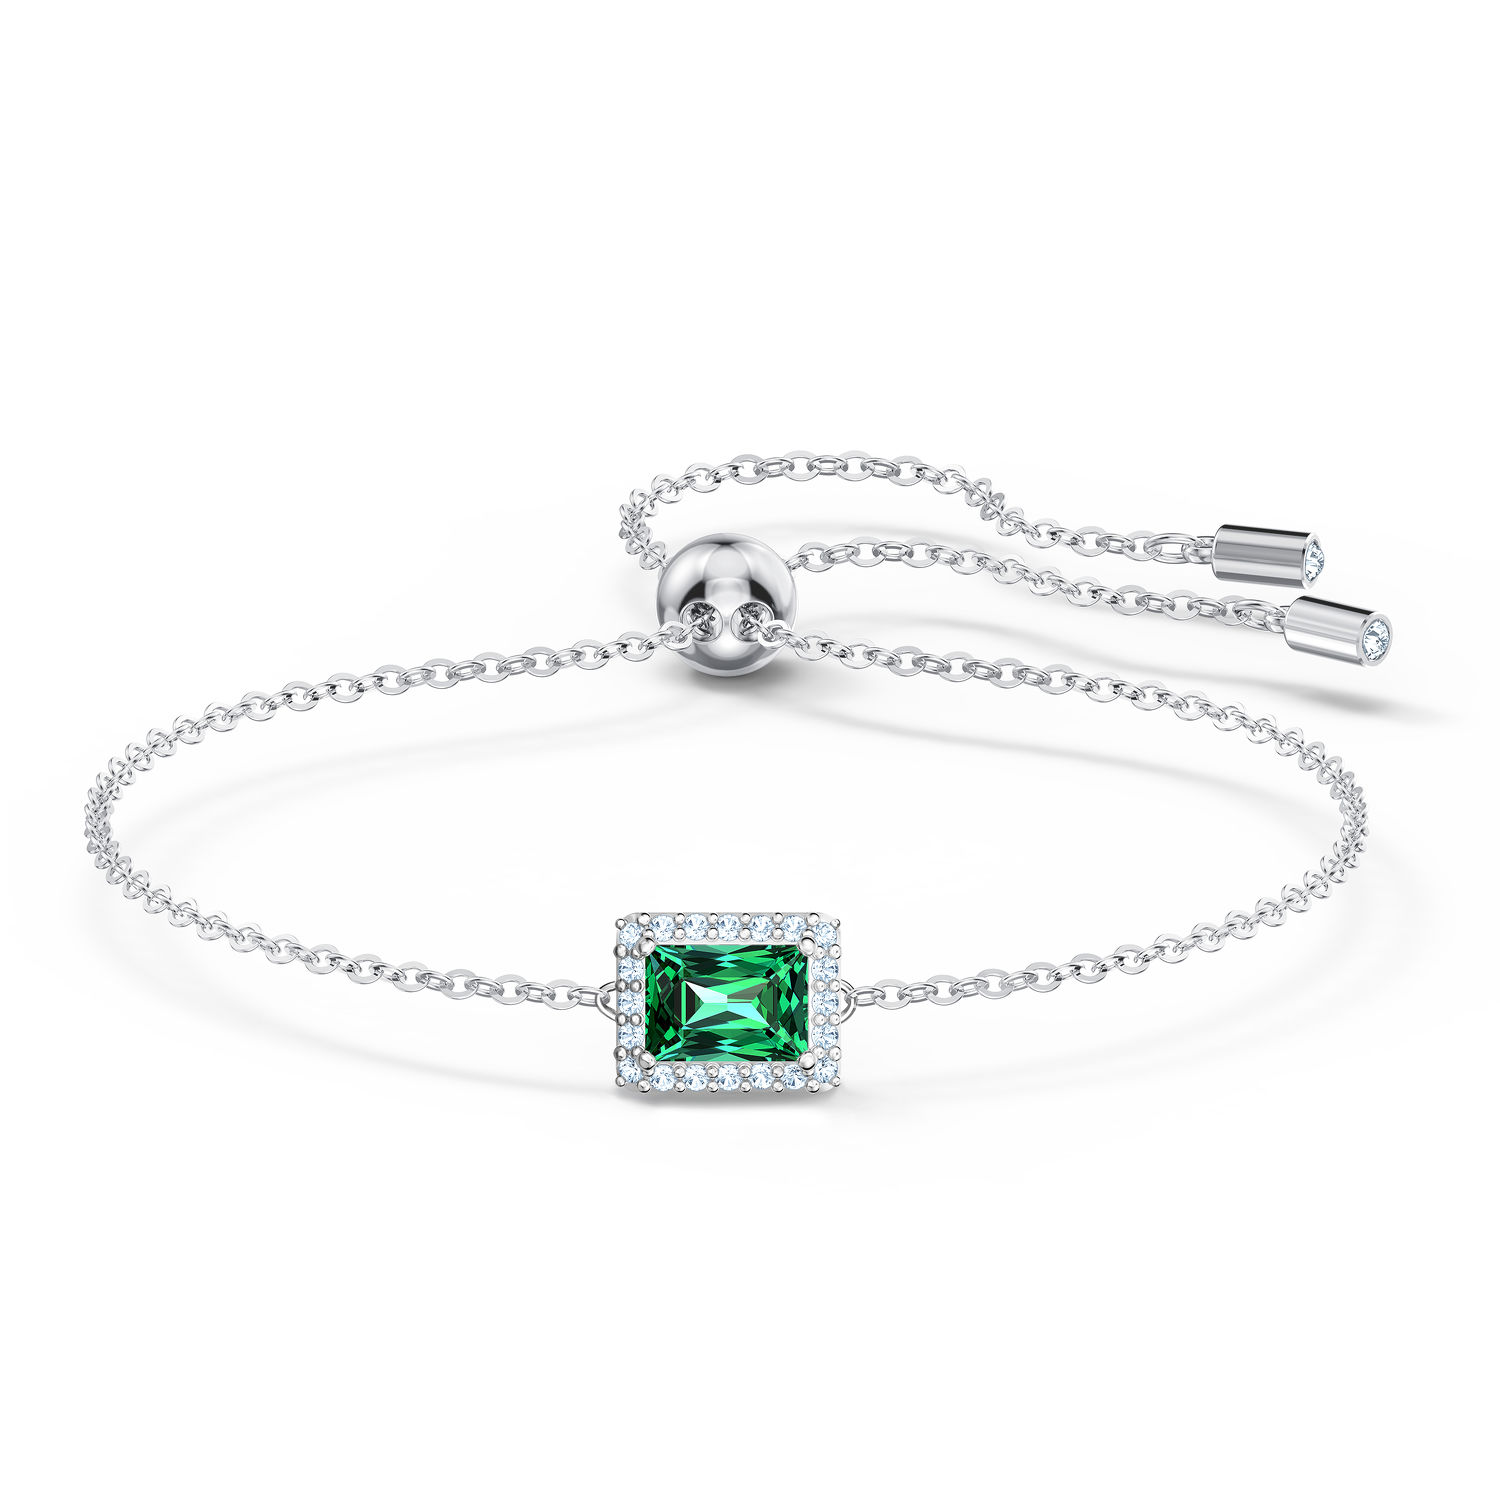 ANGELIC RECTANGULAR BRACELET - THE EDGE SINGAPORE